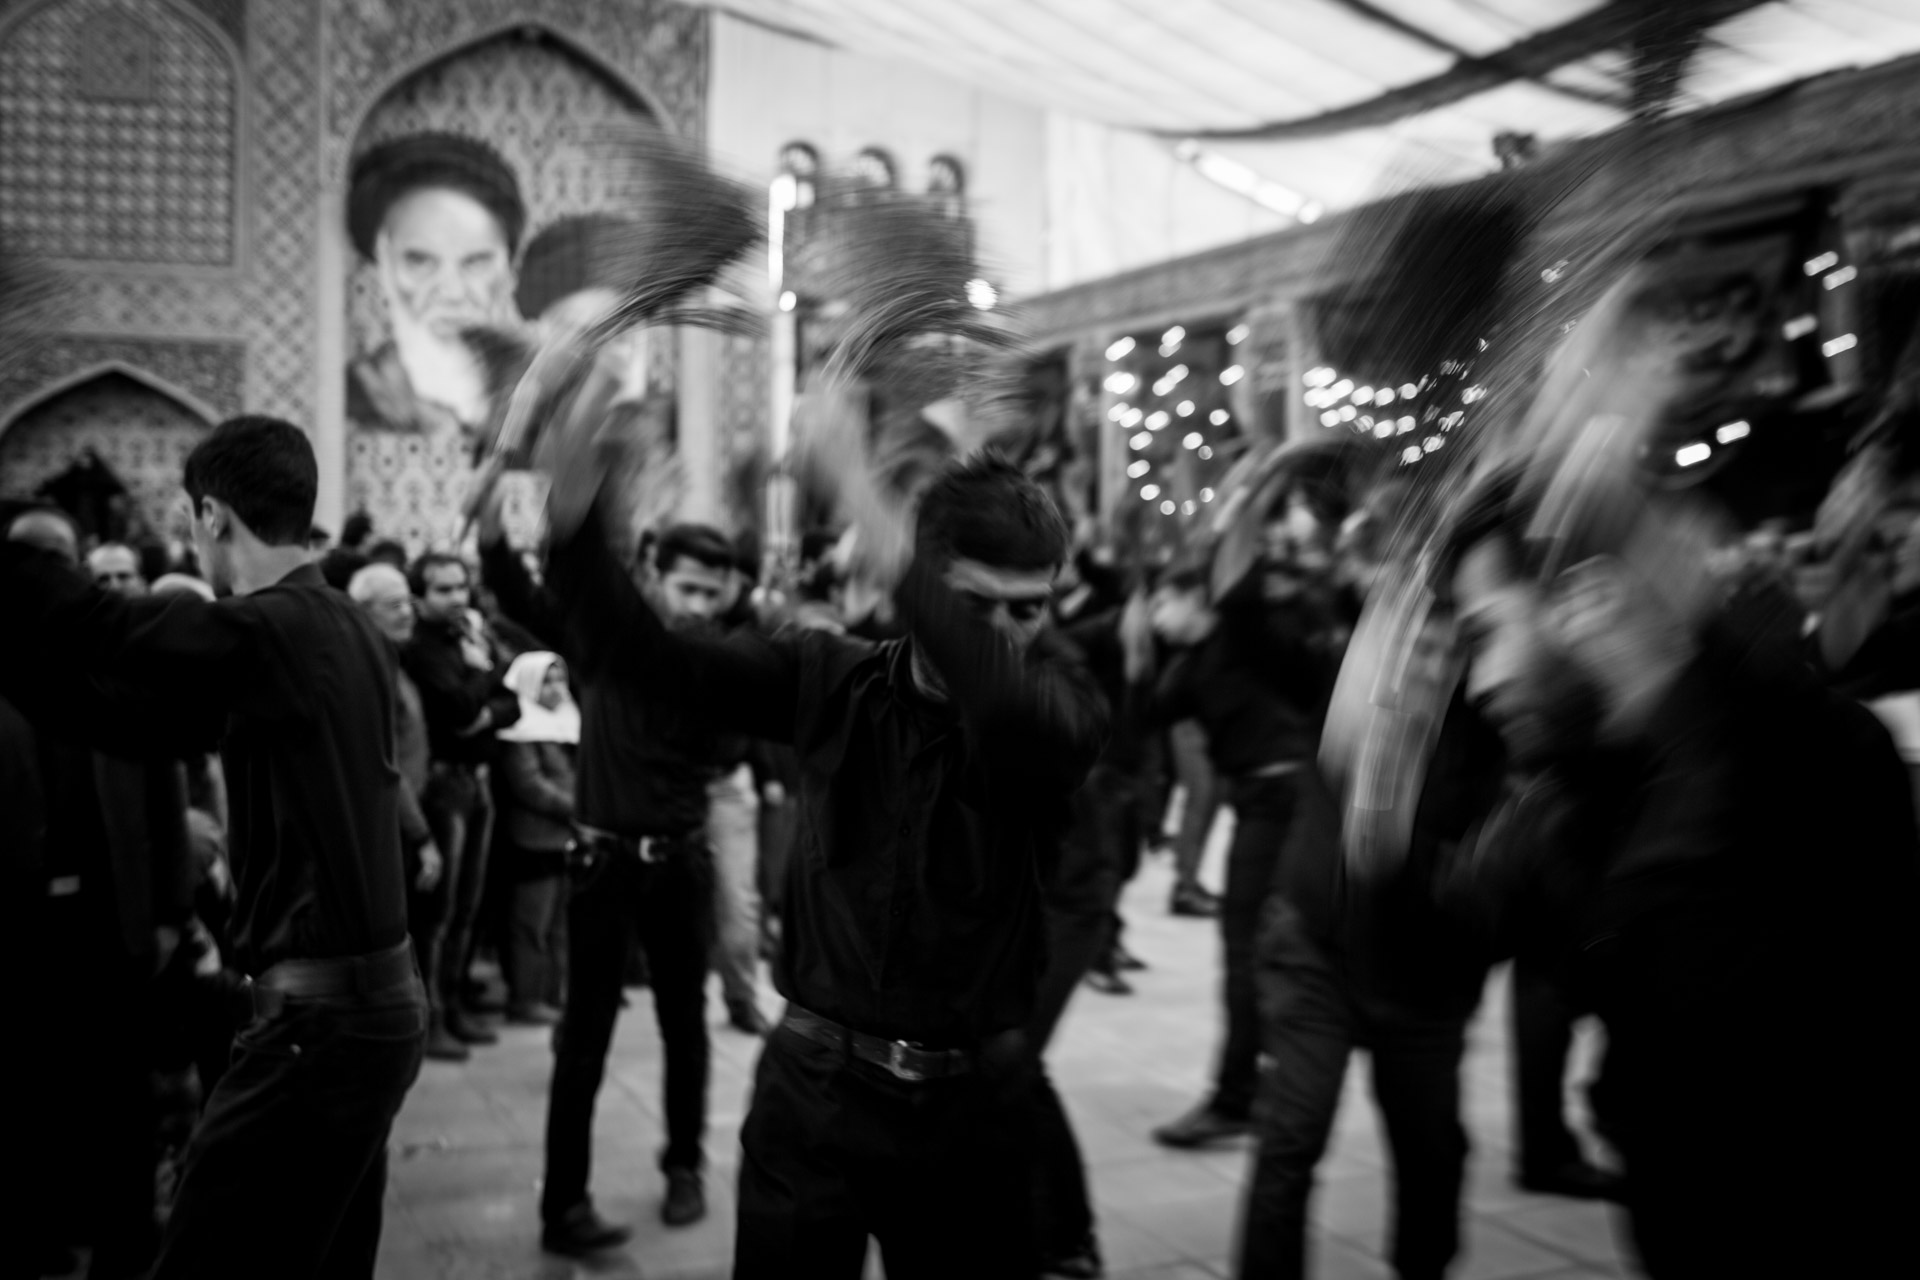 Self-flagellations in the courtyard of the Friday mosque of Isfahan during Tasua, one day before Ashura.